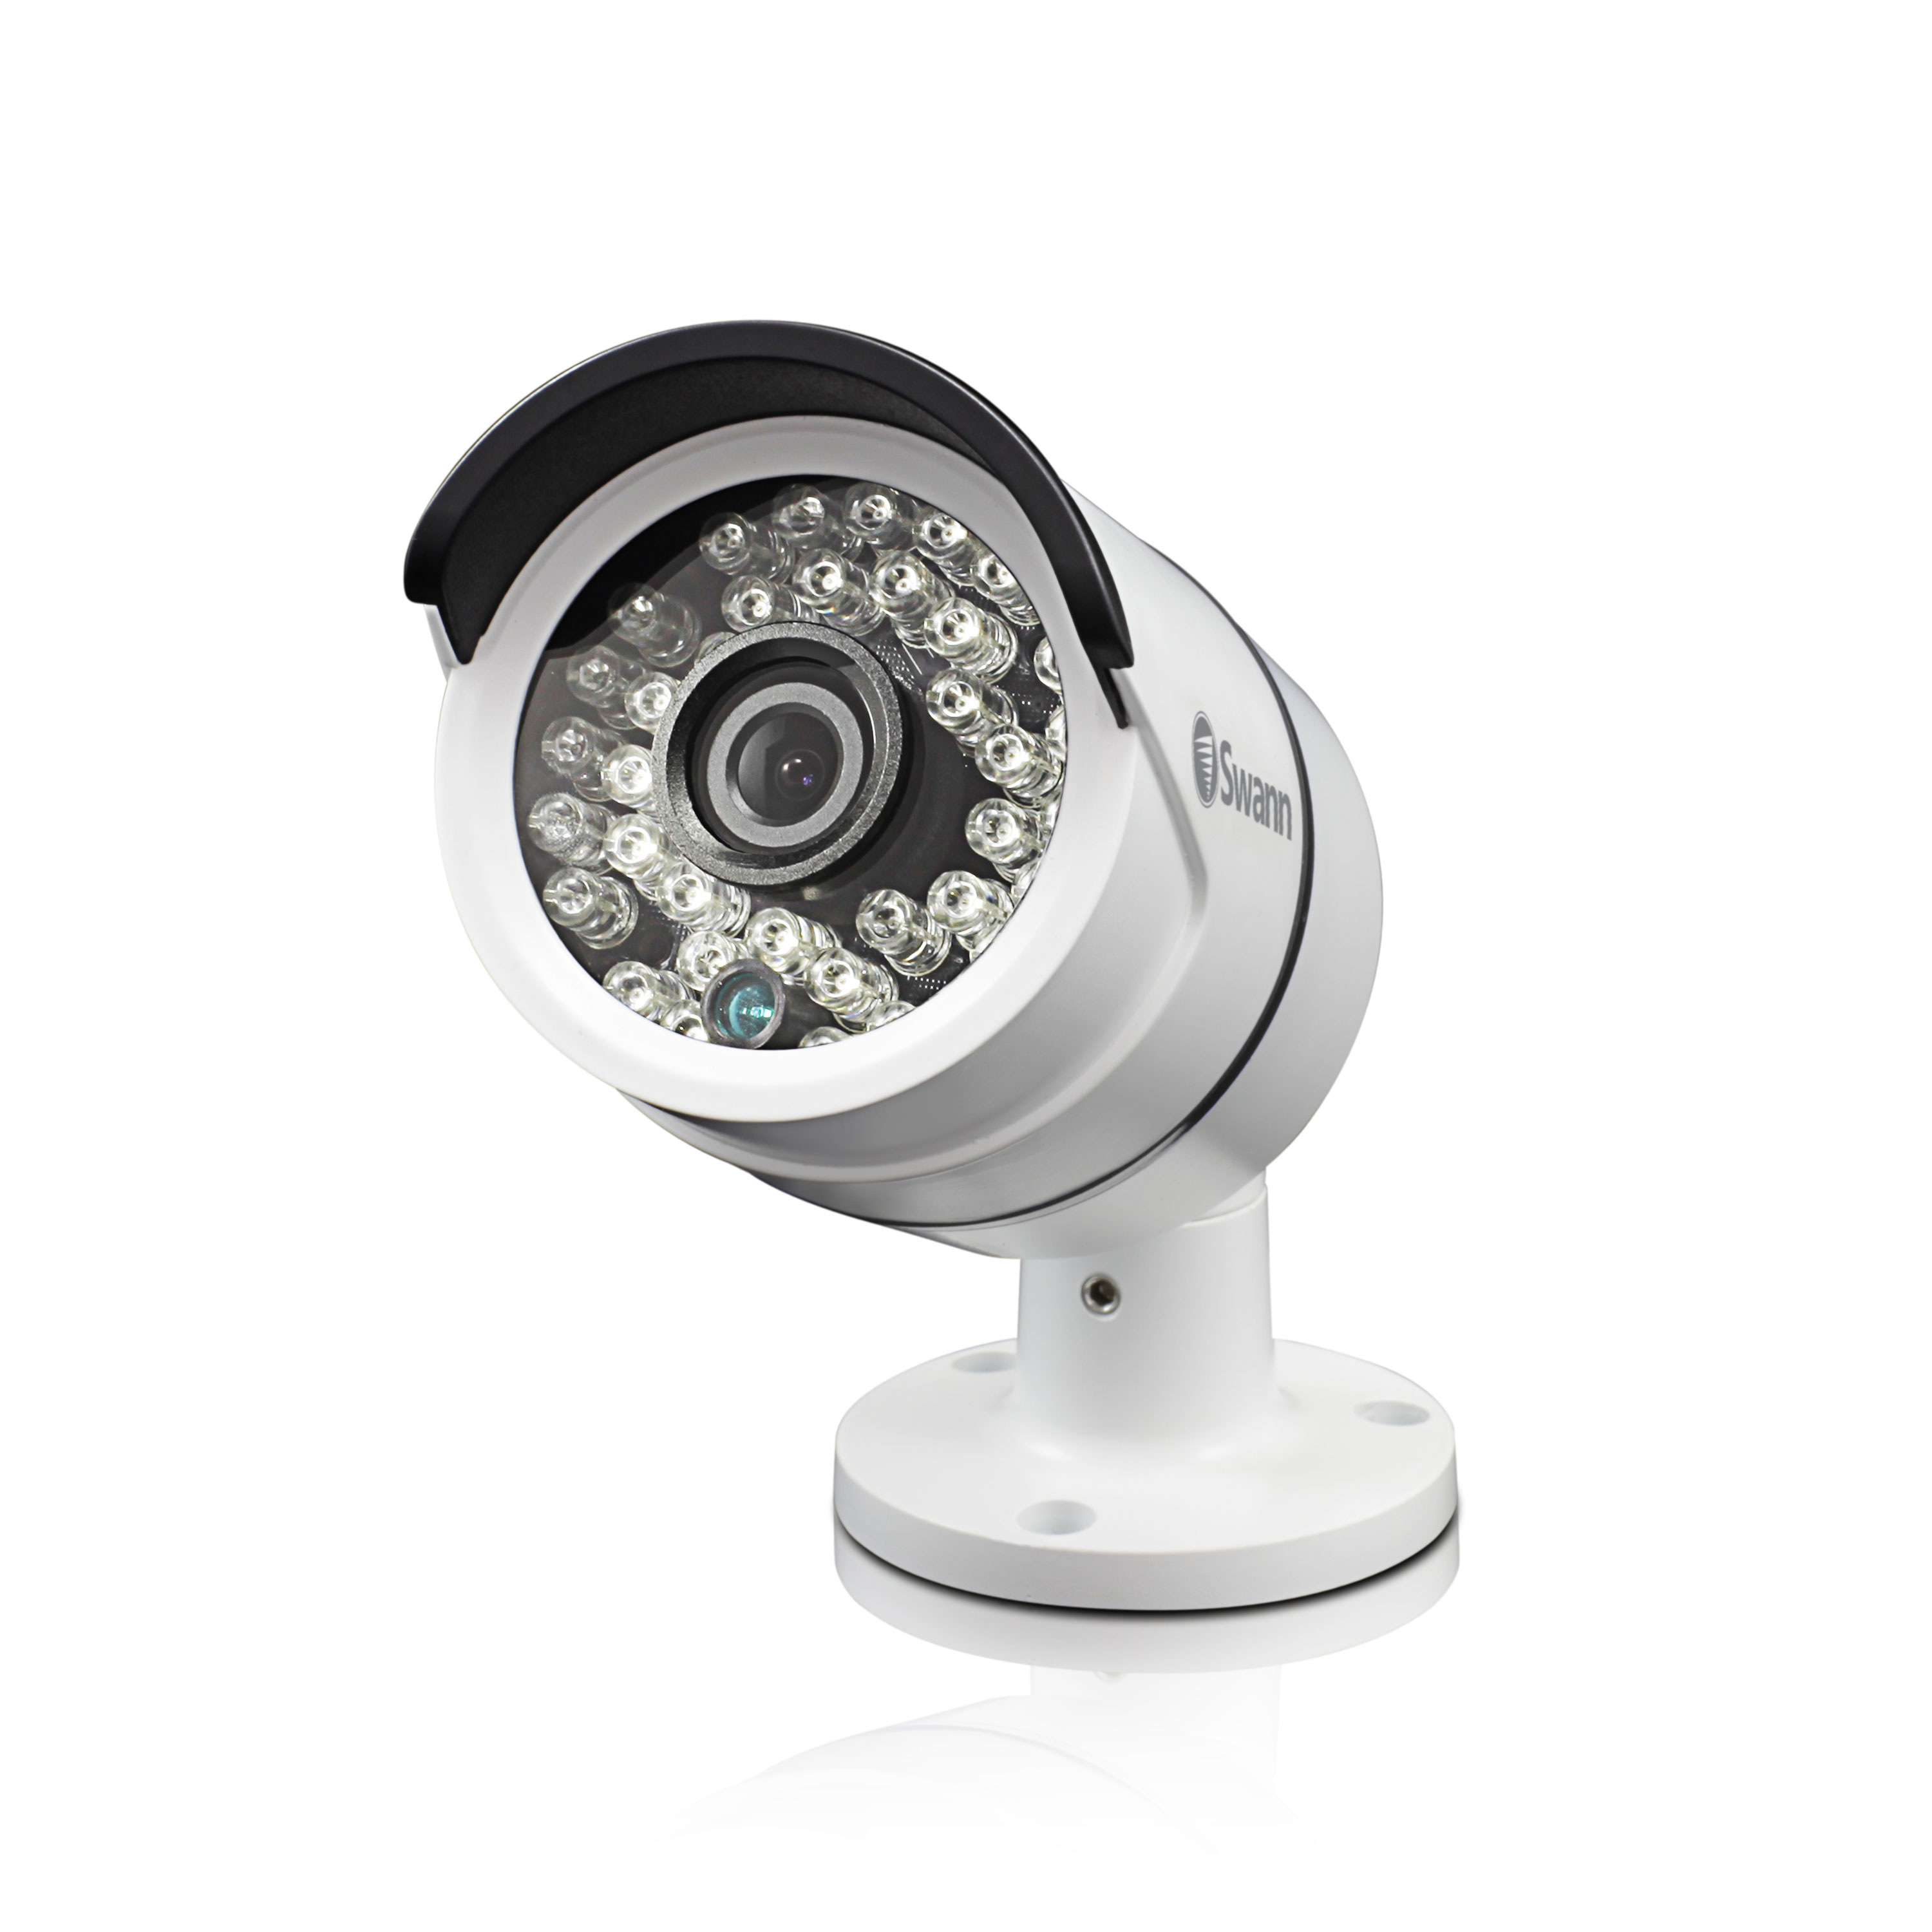 security cameras buy online today at com us pro h850 720p multi purpose day night security camera night vision